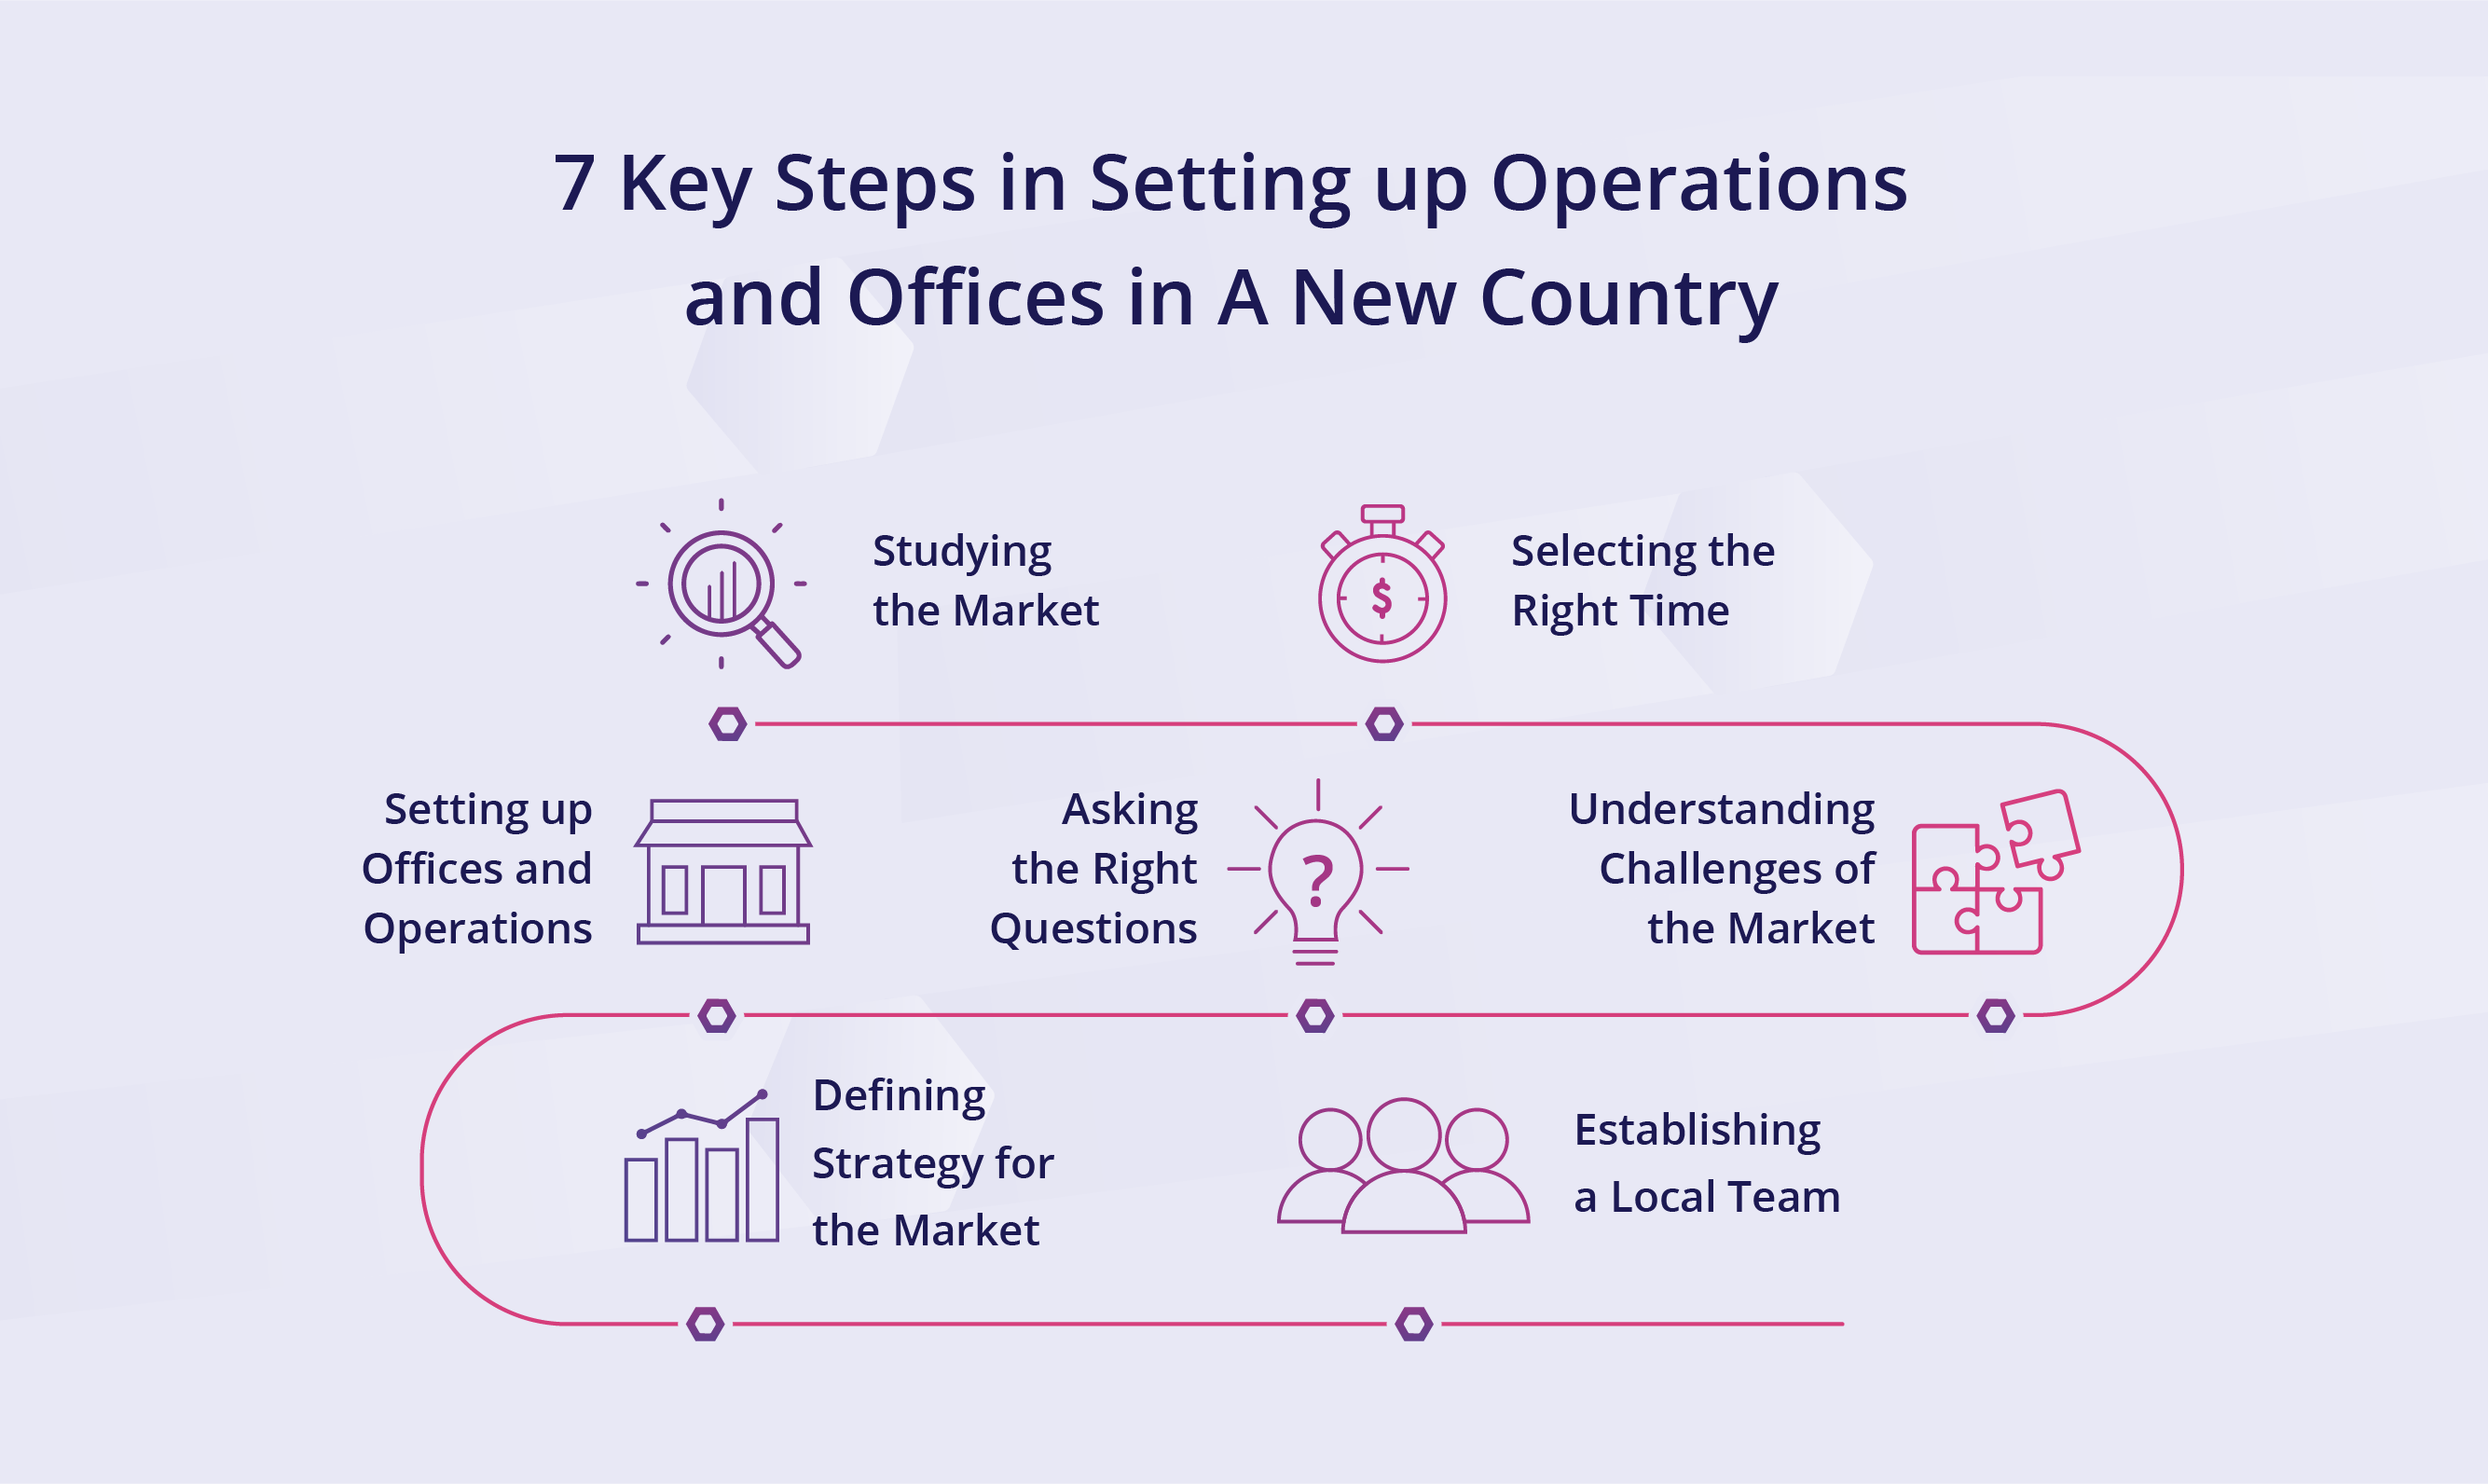 7 Key Steps to Set Up Operations in a New Market